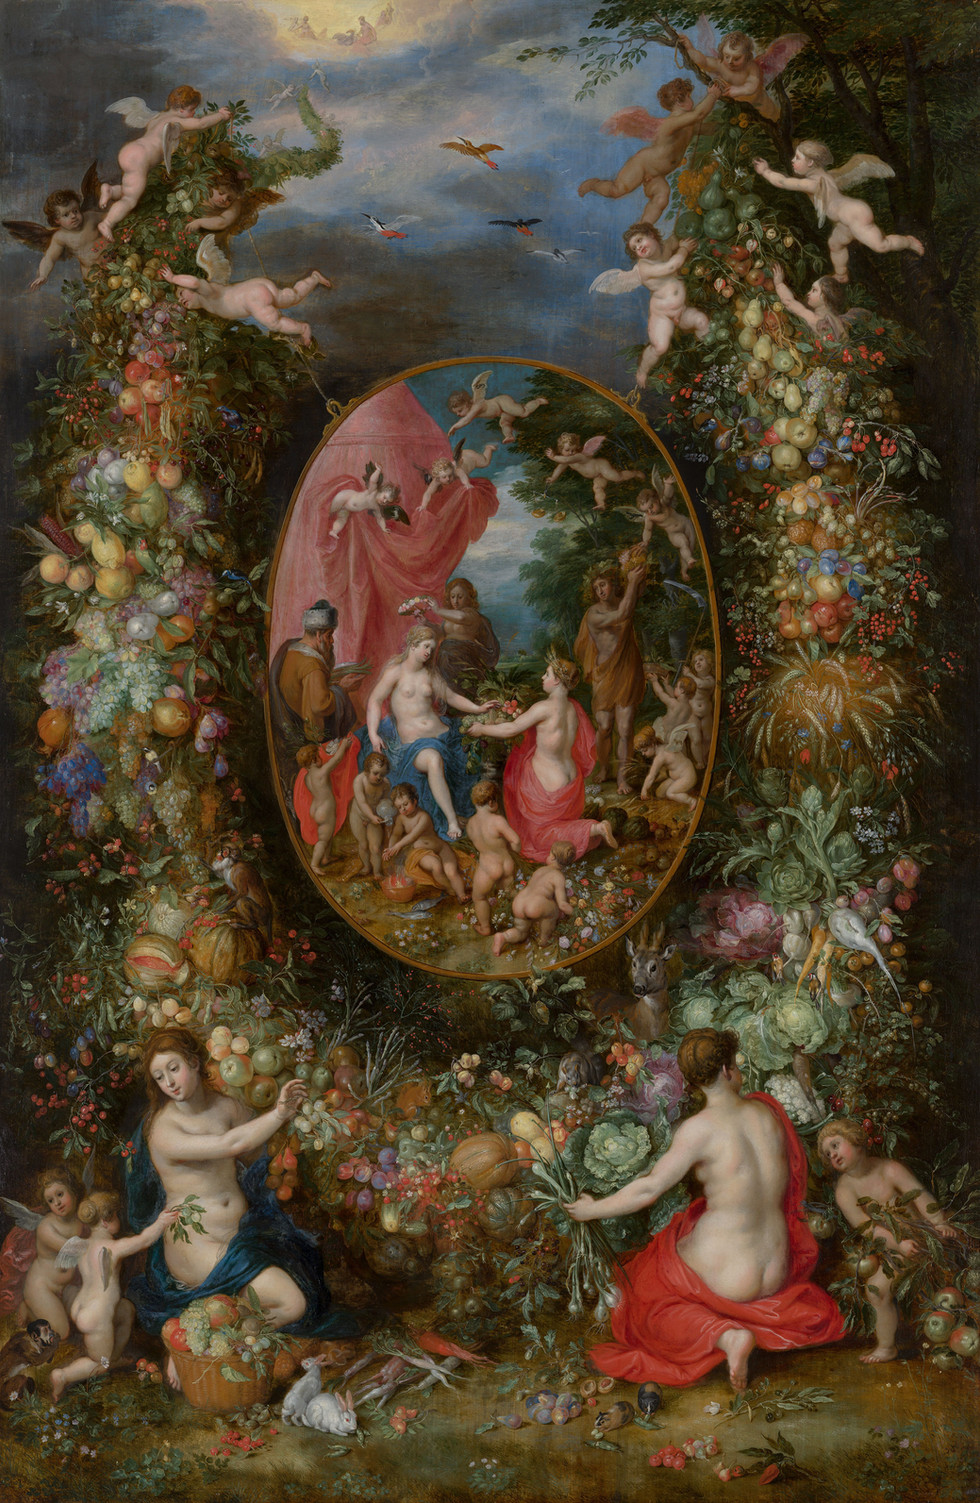 Garland of Fruit surrounding a Depiction of Cybele Receiving Gifts from Personifications of the Four Seasons